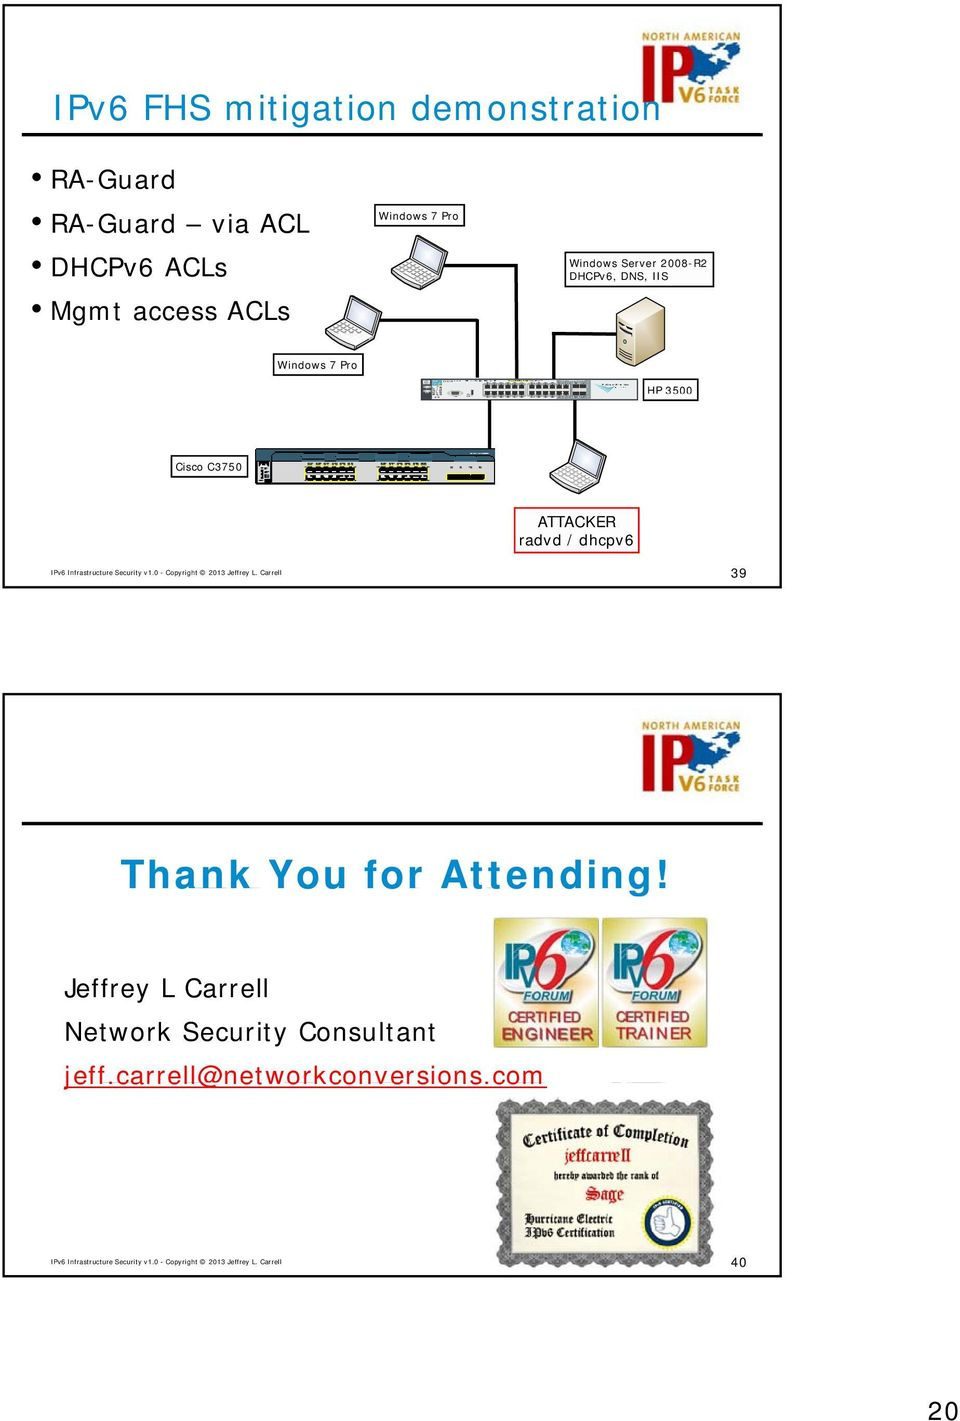 Pro HP 3500 Cisco C3750 ATTACKER radvd / dhcpv6 39 Thank You for Attending!